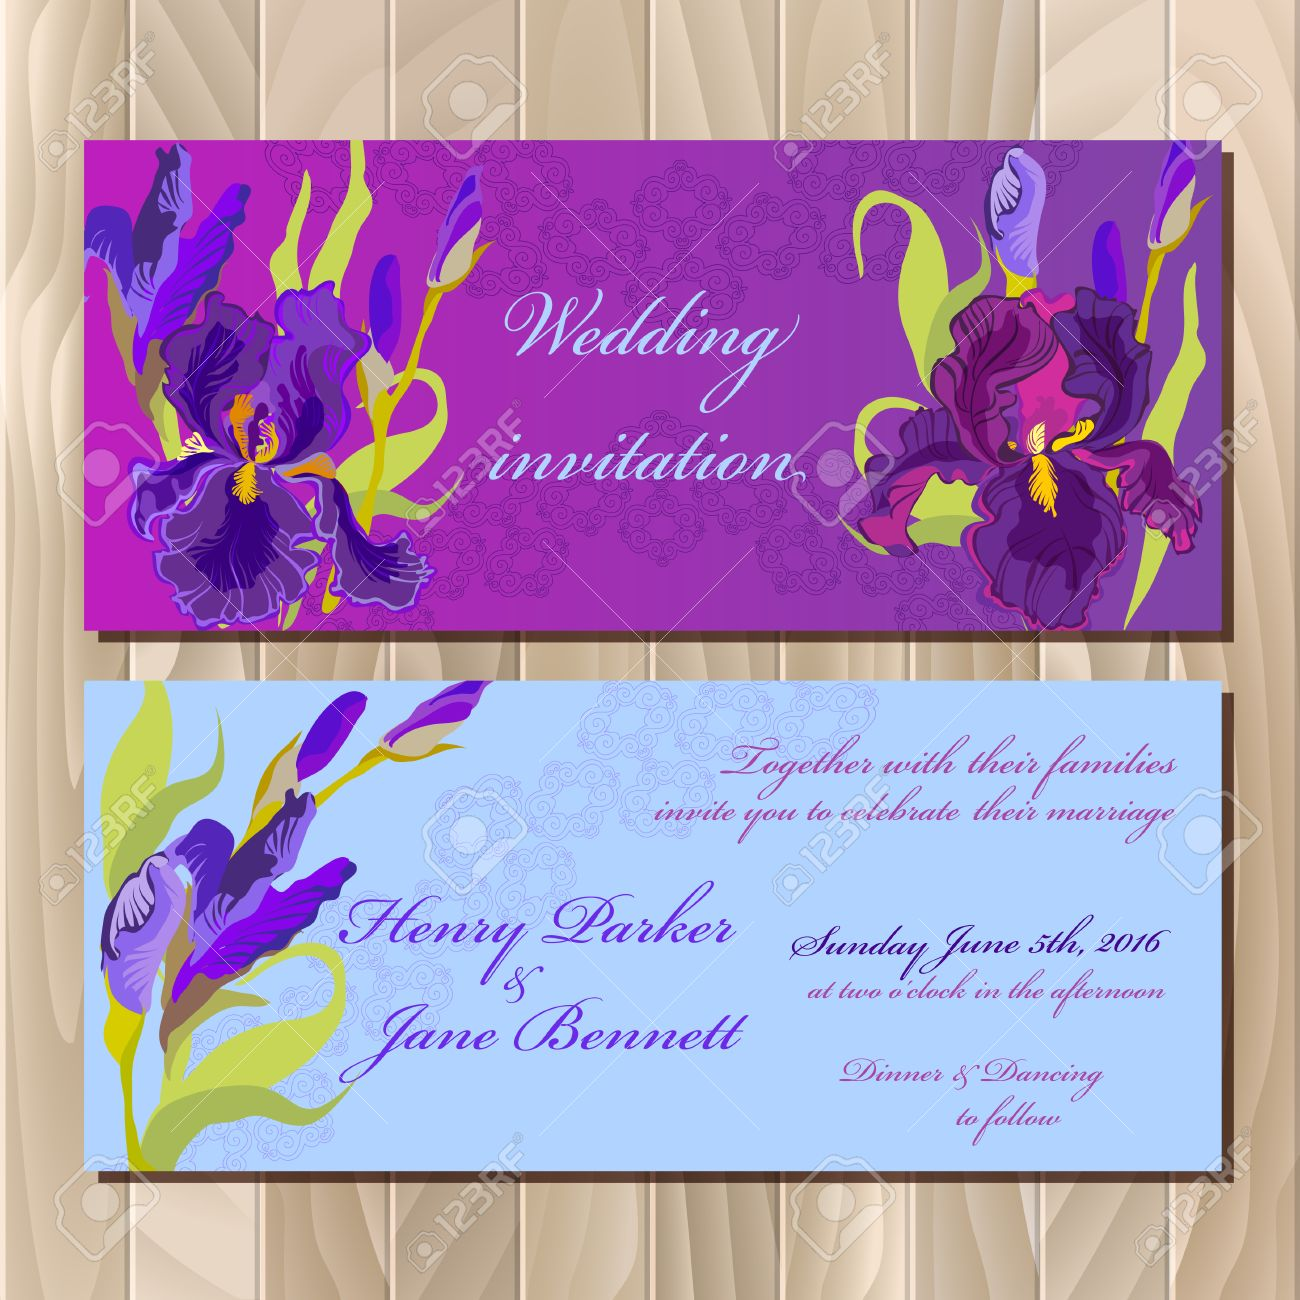 Vector Wedding Invitation Card With Lilac Violet Purple Iris Flower And Lace Background Bouquet Illustration: Purple Wedding Invitation Card At Websimilar.org